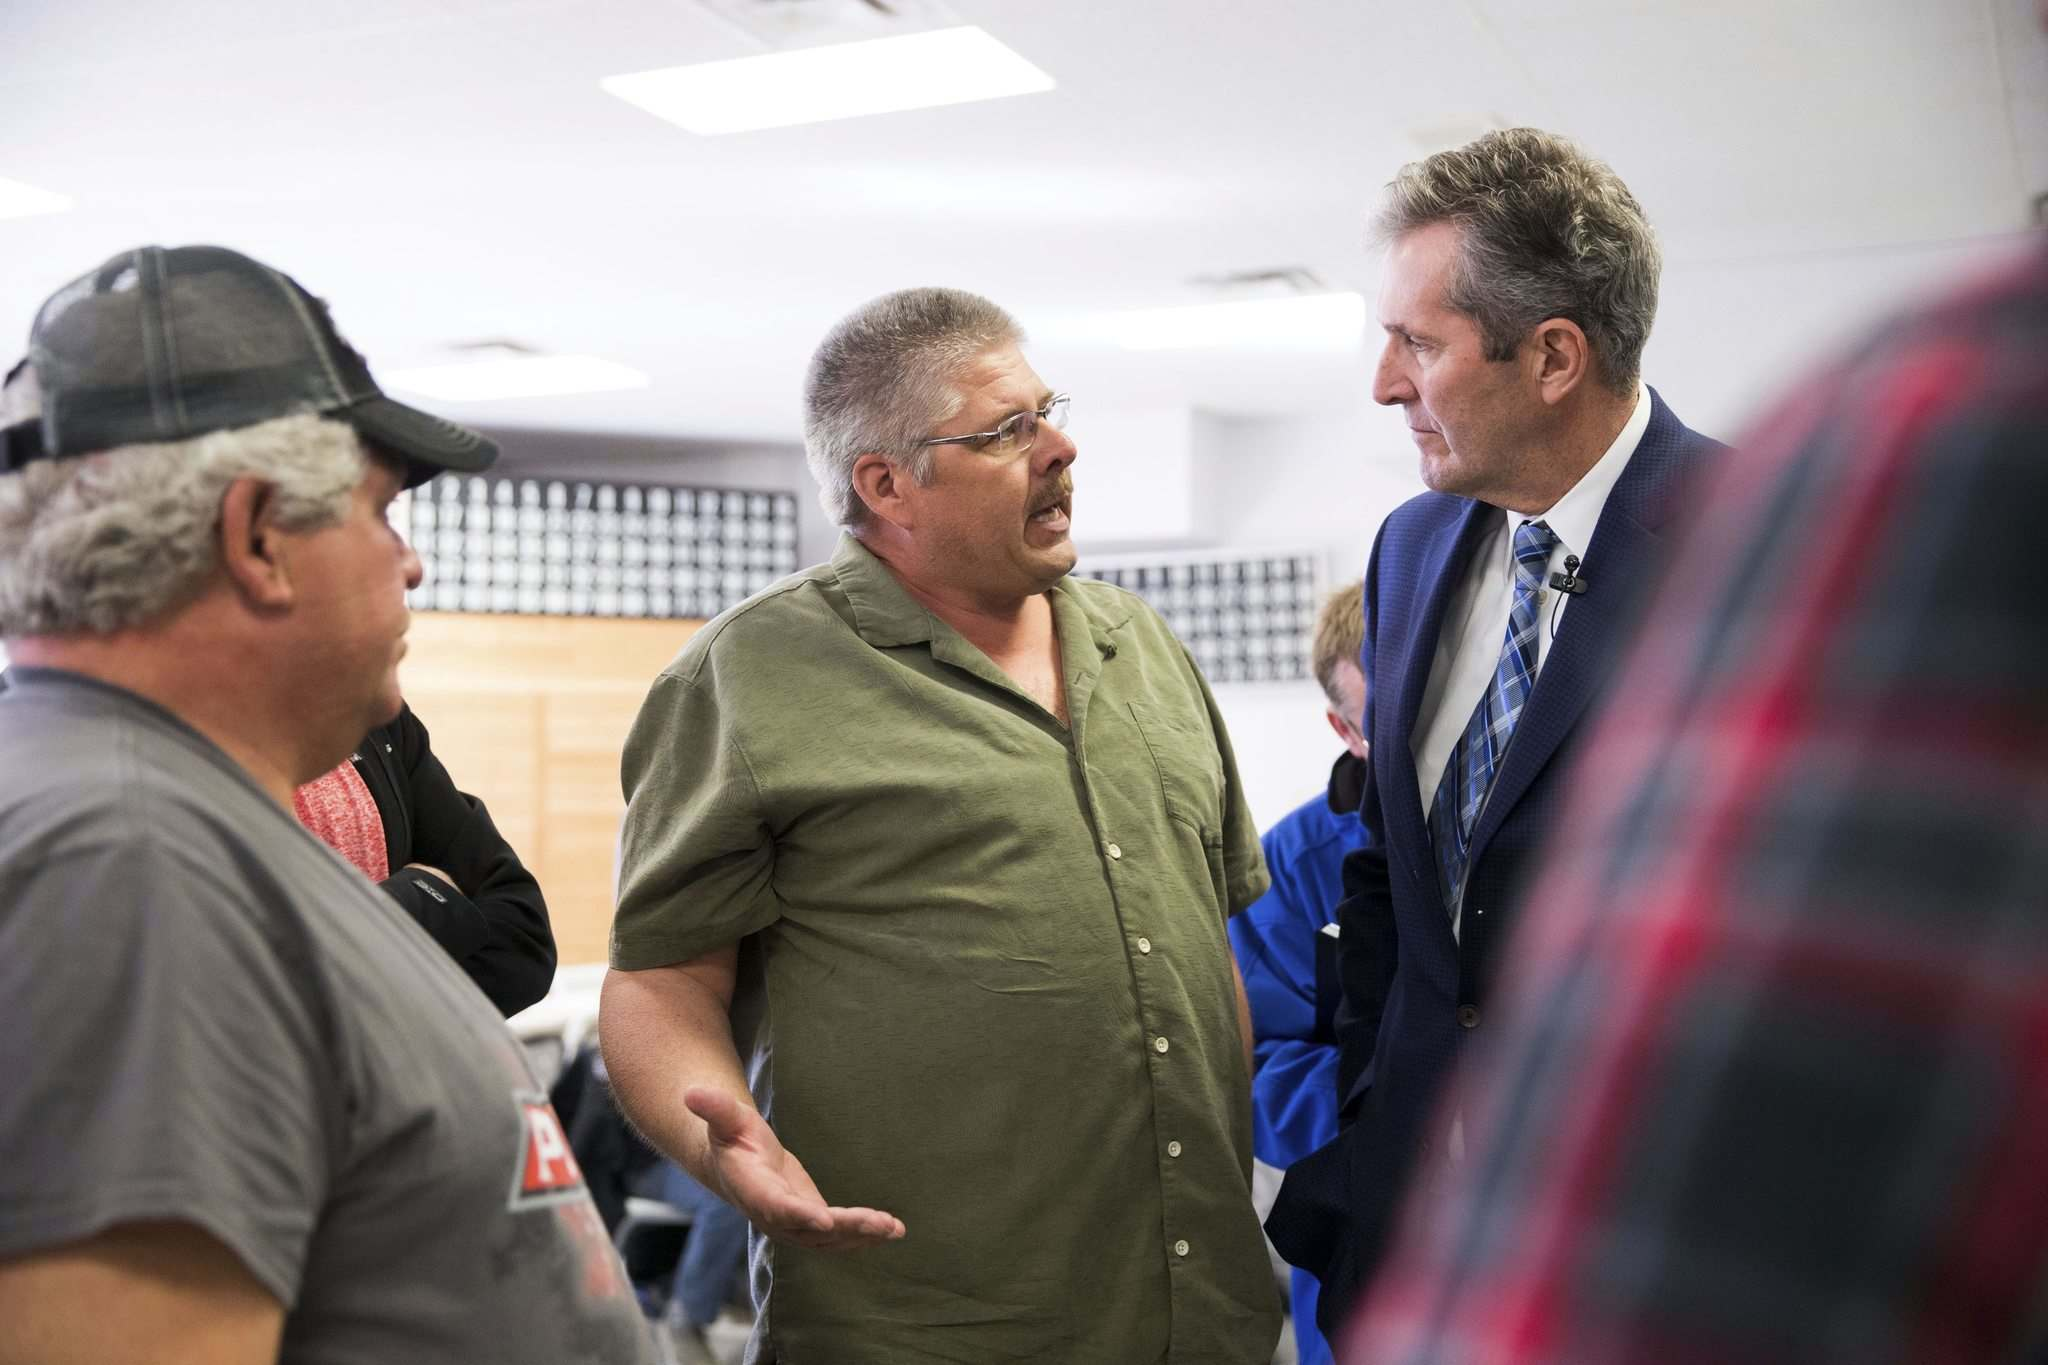 MIKAELA MACKENZIE / WINNIPEG FREE PRESS</p><p>Dan Meisner talks to Premier Brian Pallister a town hall on the proposed Lake Manitoba outlet in St. Laurent, Manitoba on Monday.</p>